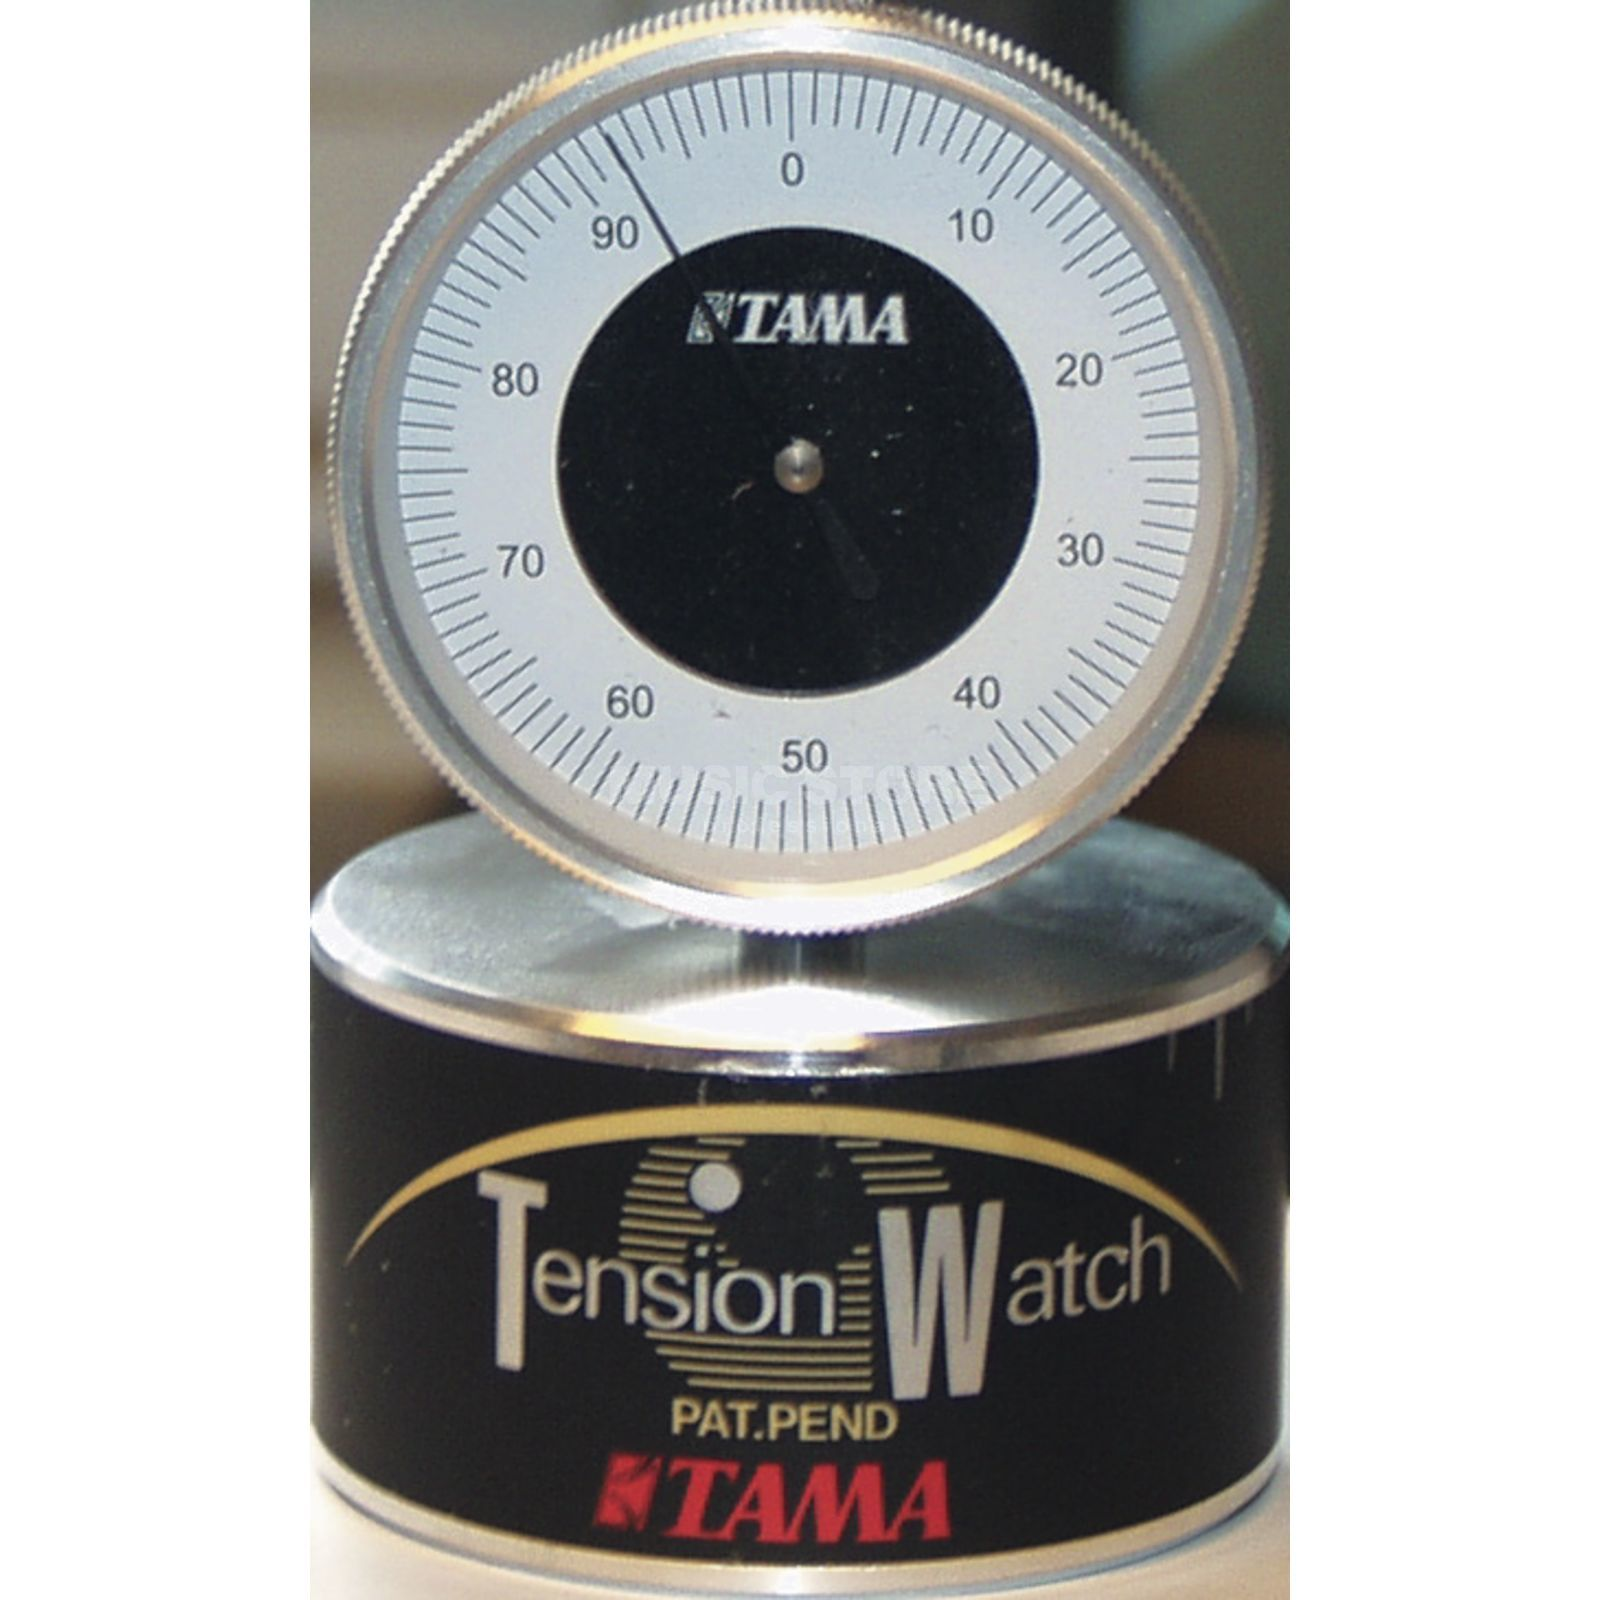 Tama Tension Watch TW100C, Appui d'accordage Image du produit